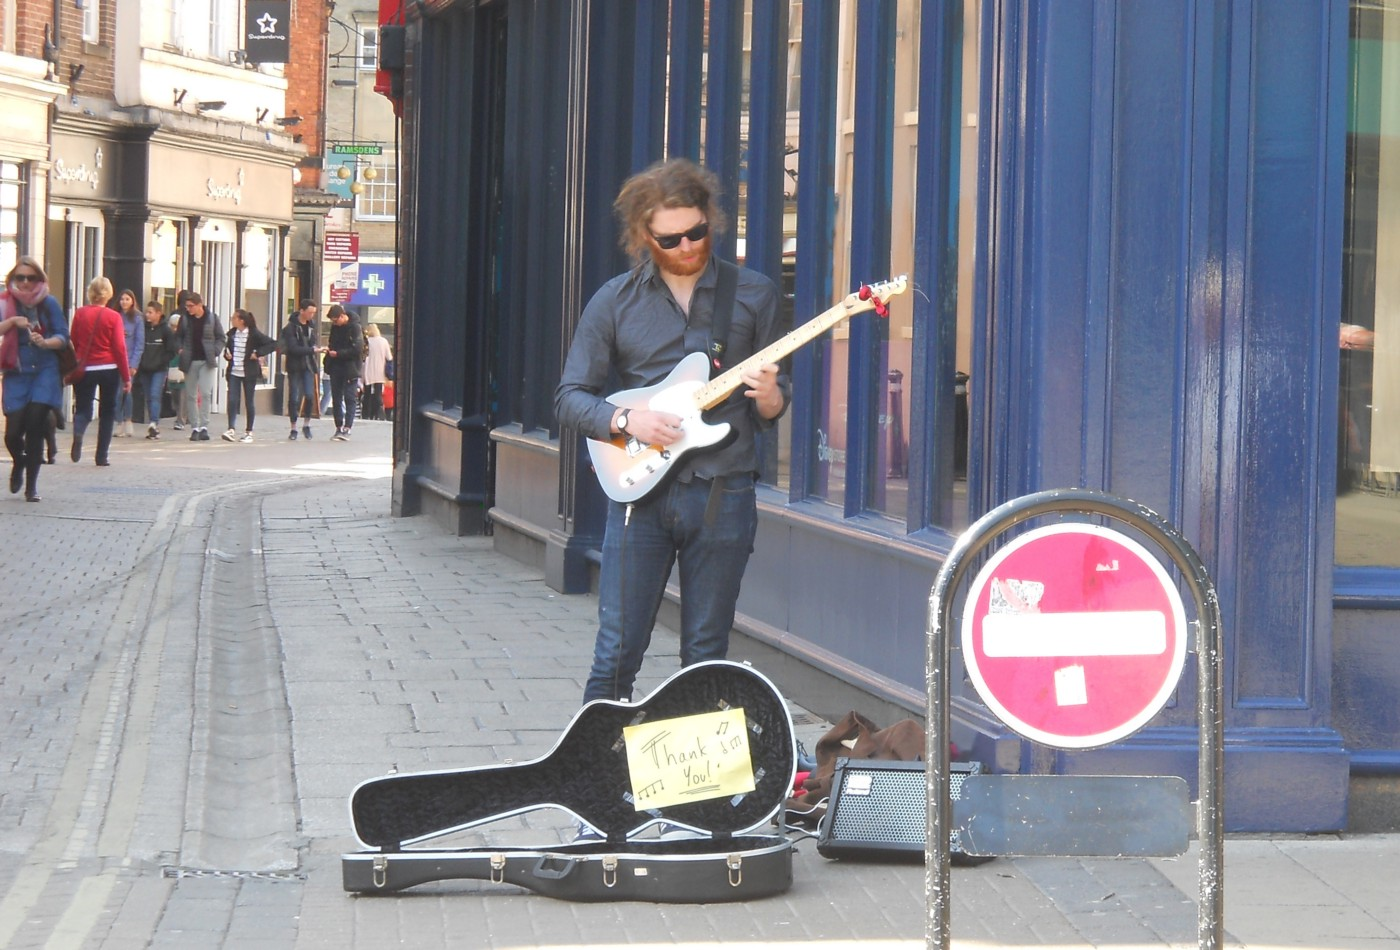 Man busking on a street corner in York, playing a Fender Telecaster electric guitar with his guitar case open at his feet to collect any coins donated to him by members of the public